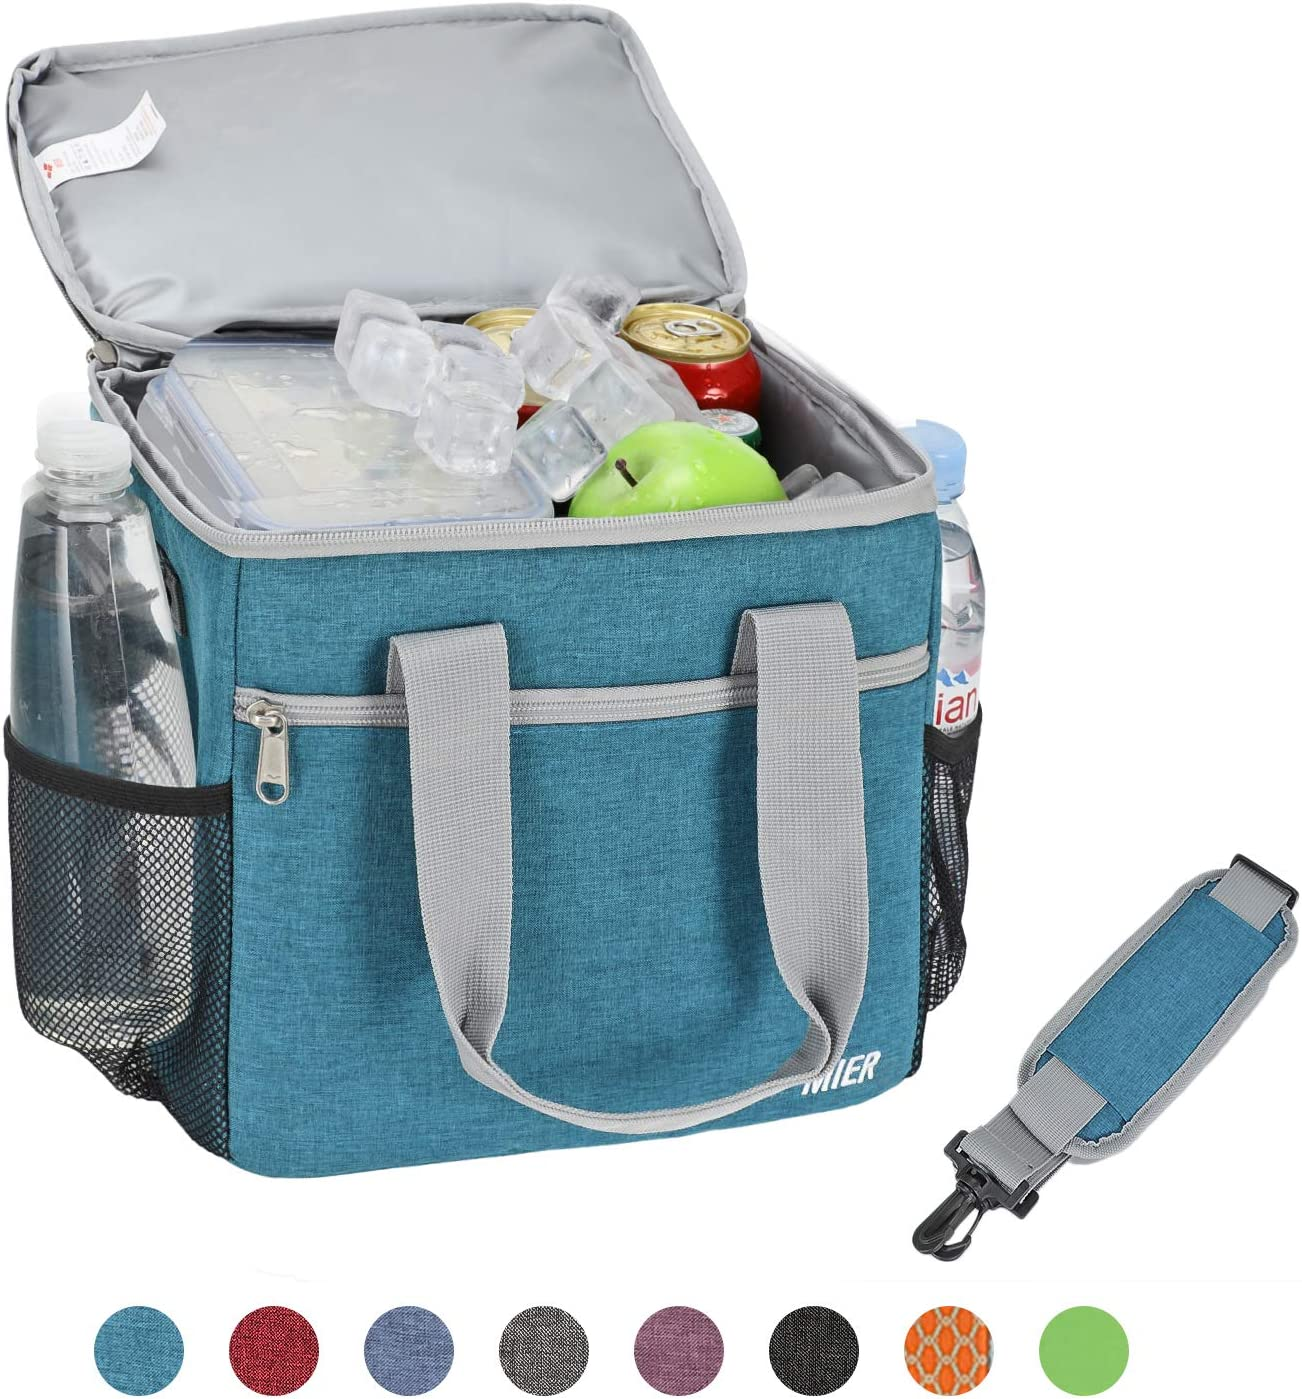 MIER 24 Can Large Capacity Soft Cooler Tote Insulated Lunch Bag Outdoor Picnic Bag,Ocean Blue